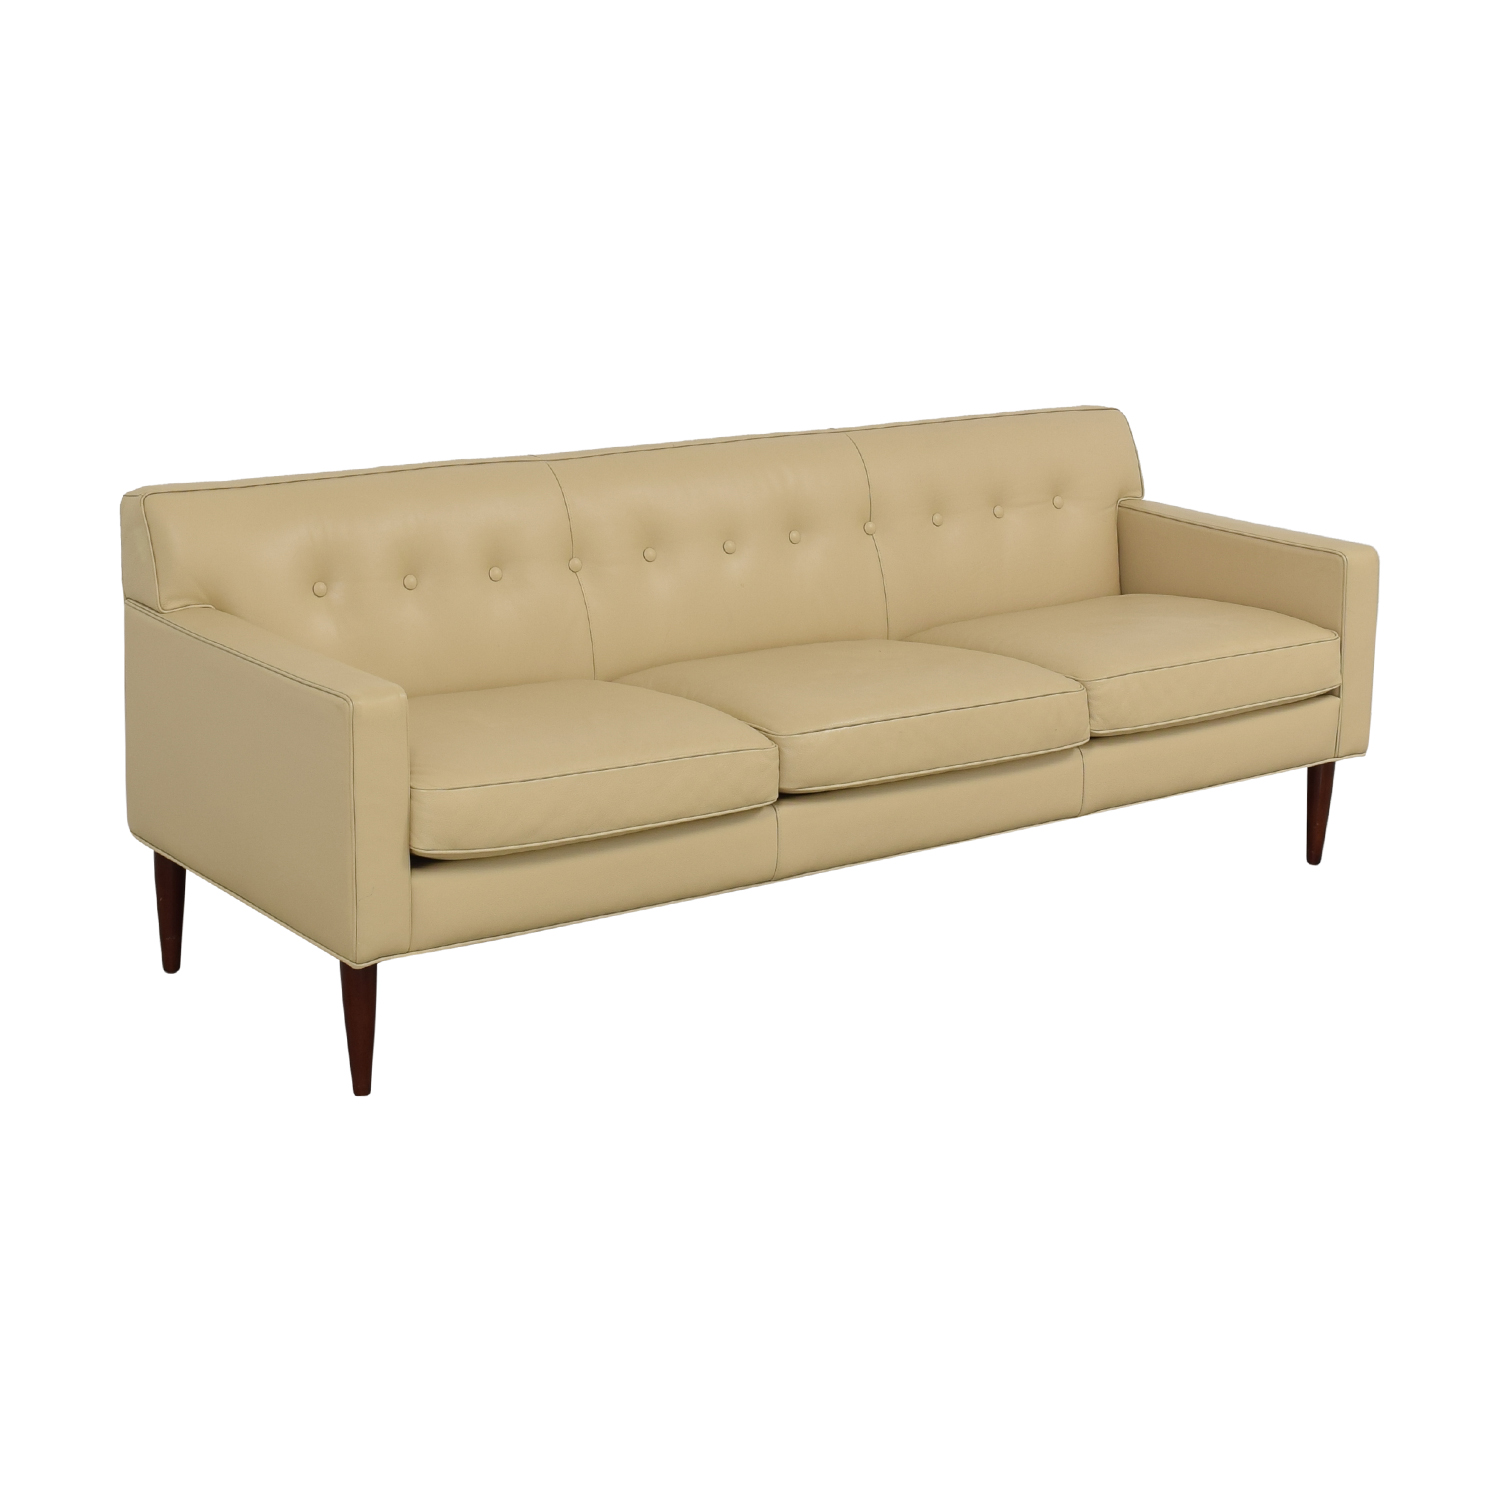 American Leather American Leather Quincy Sofa on sale